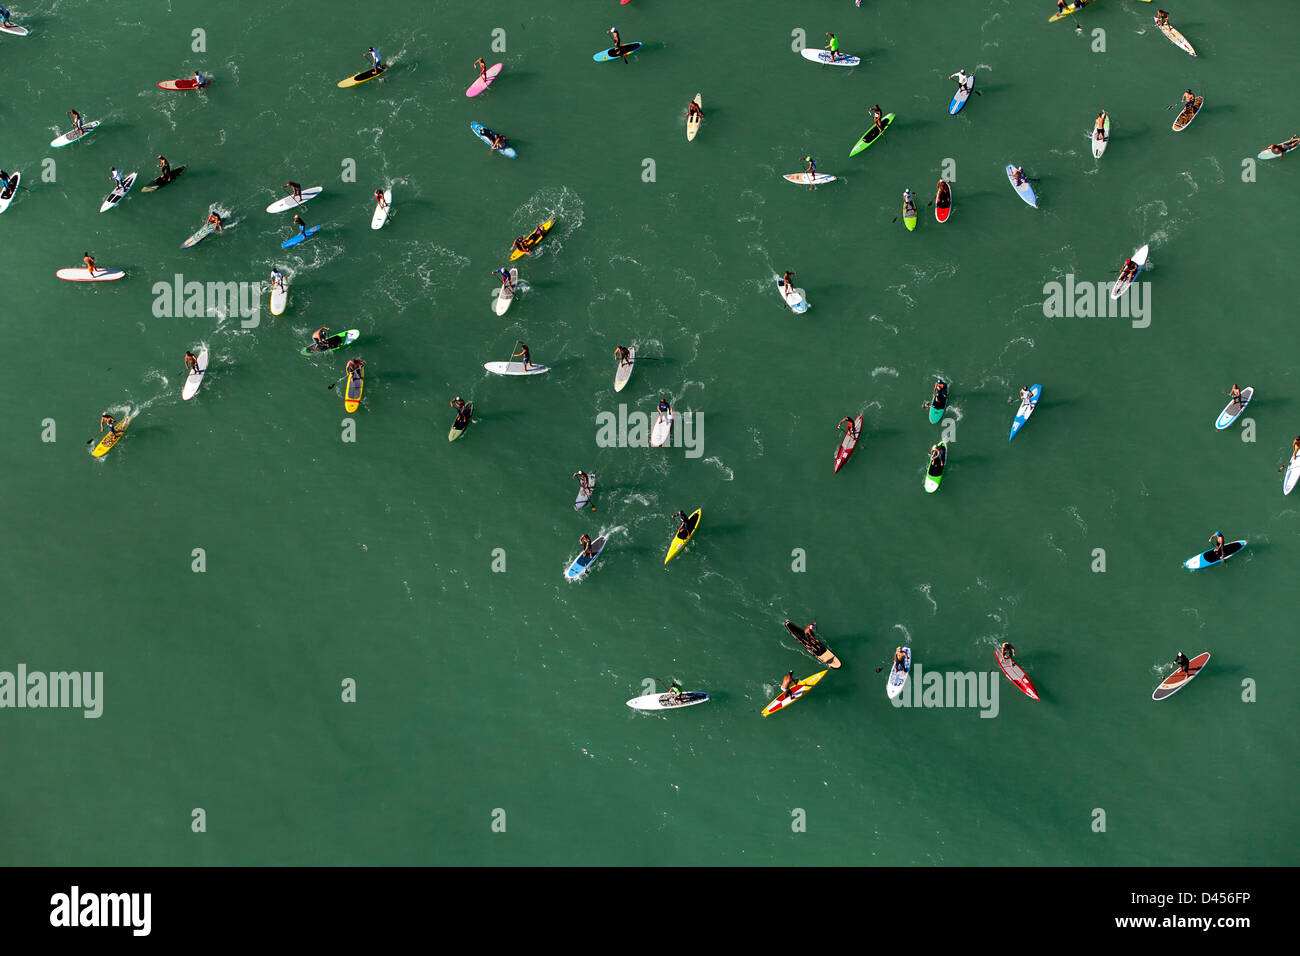 Battle Of the Paddle, Dana Point CA Aerial - Guinness World Record, attempting to break the existing record for - Stock Image